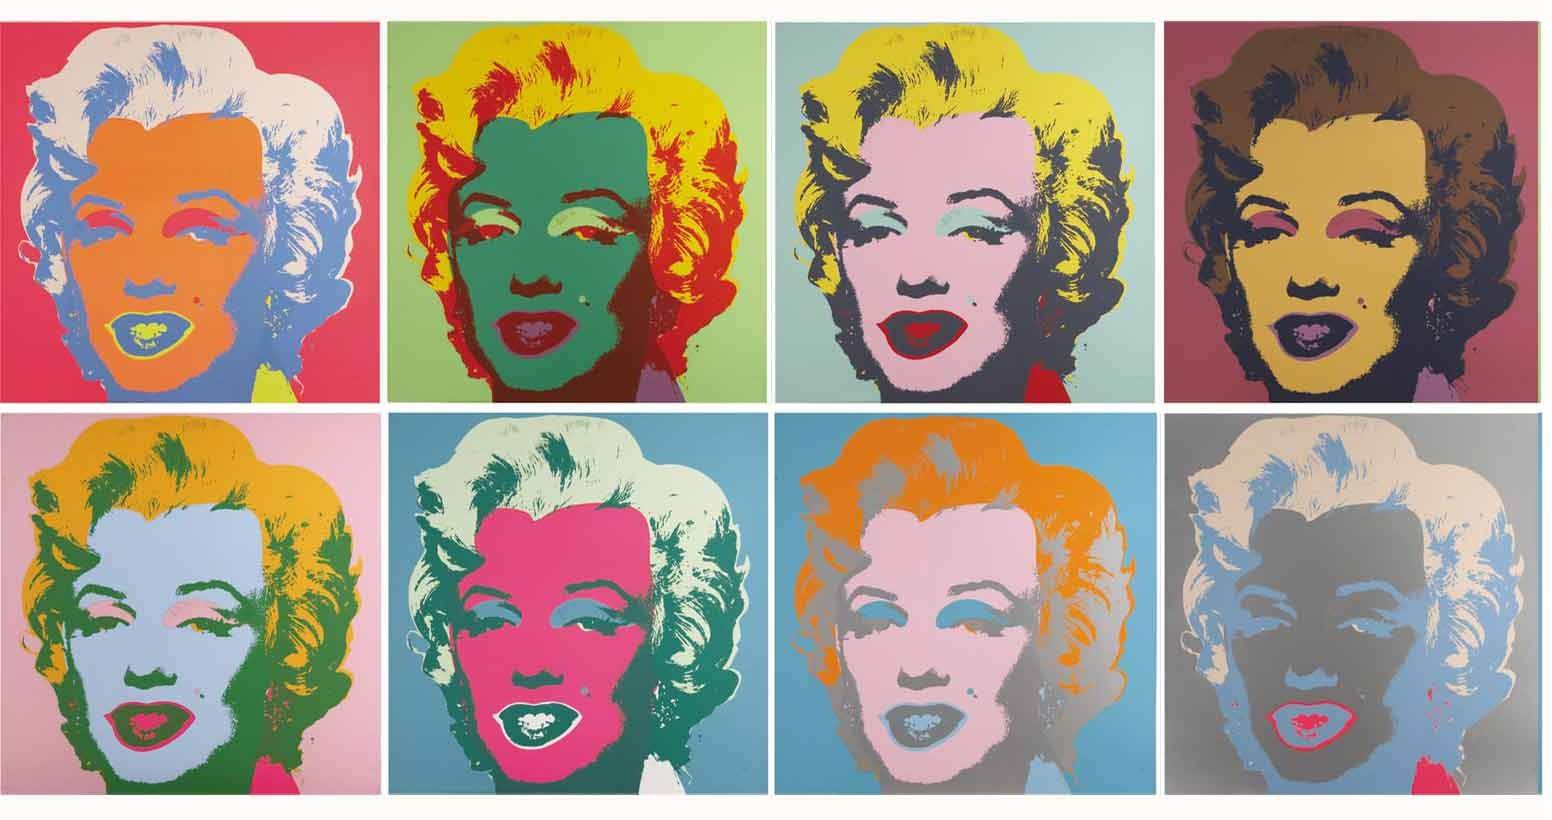 'Marylin Monroe' von Andy Warhol